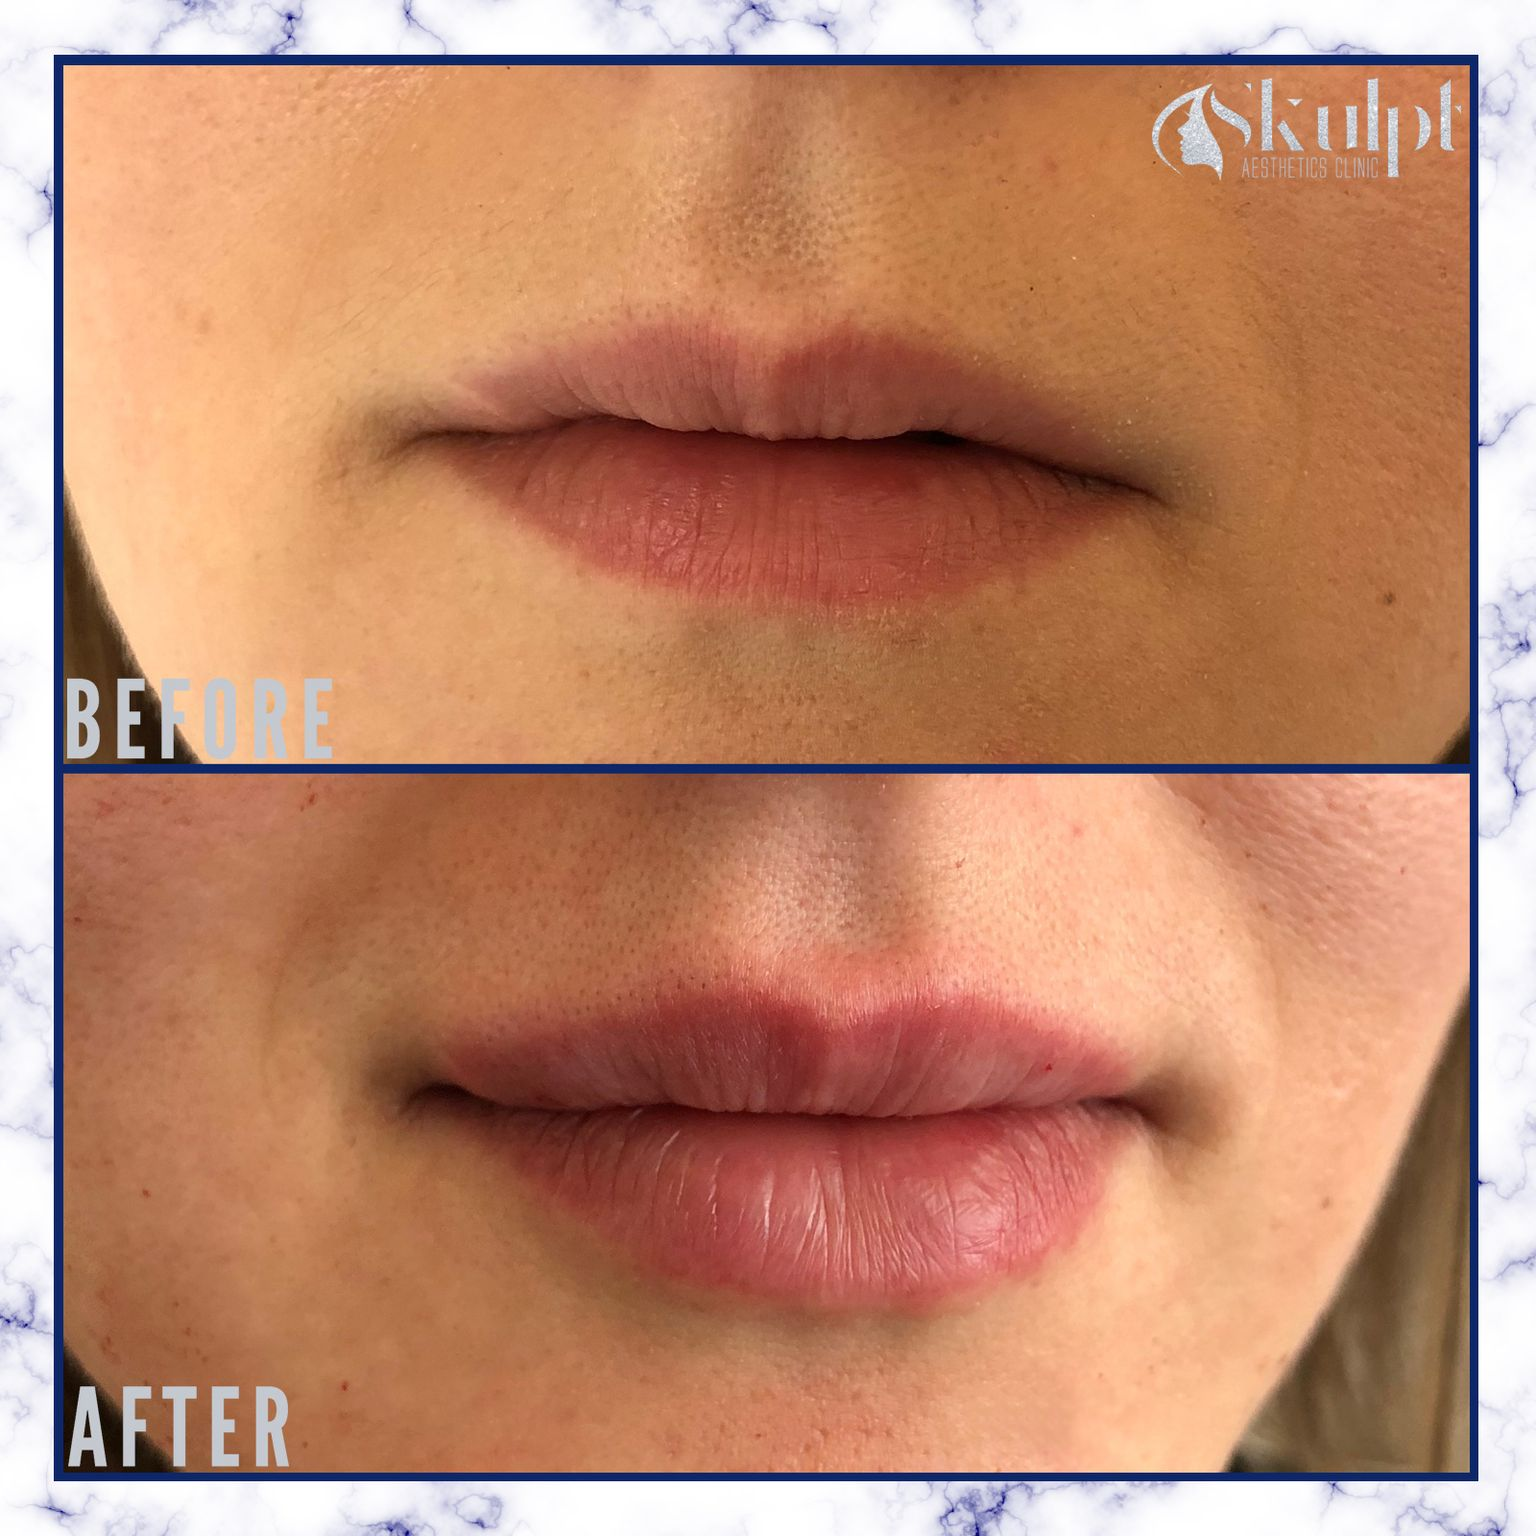 Jesal lip filler before and after image